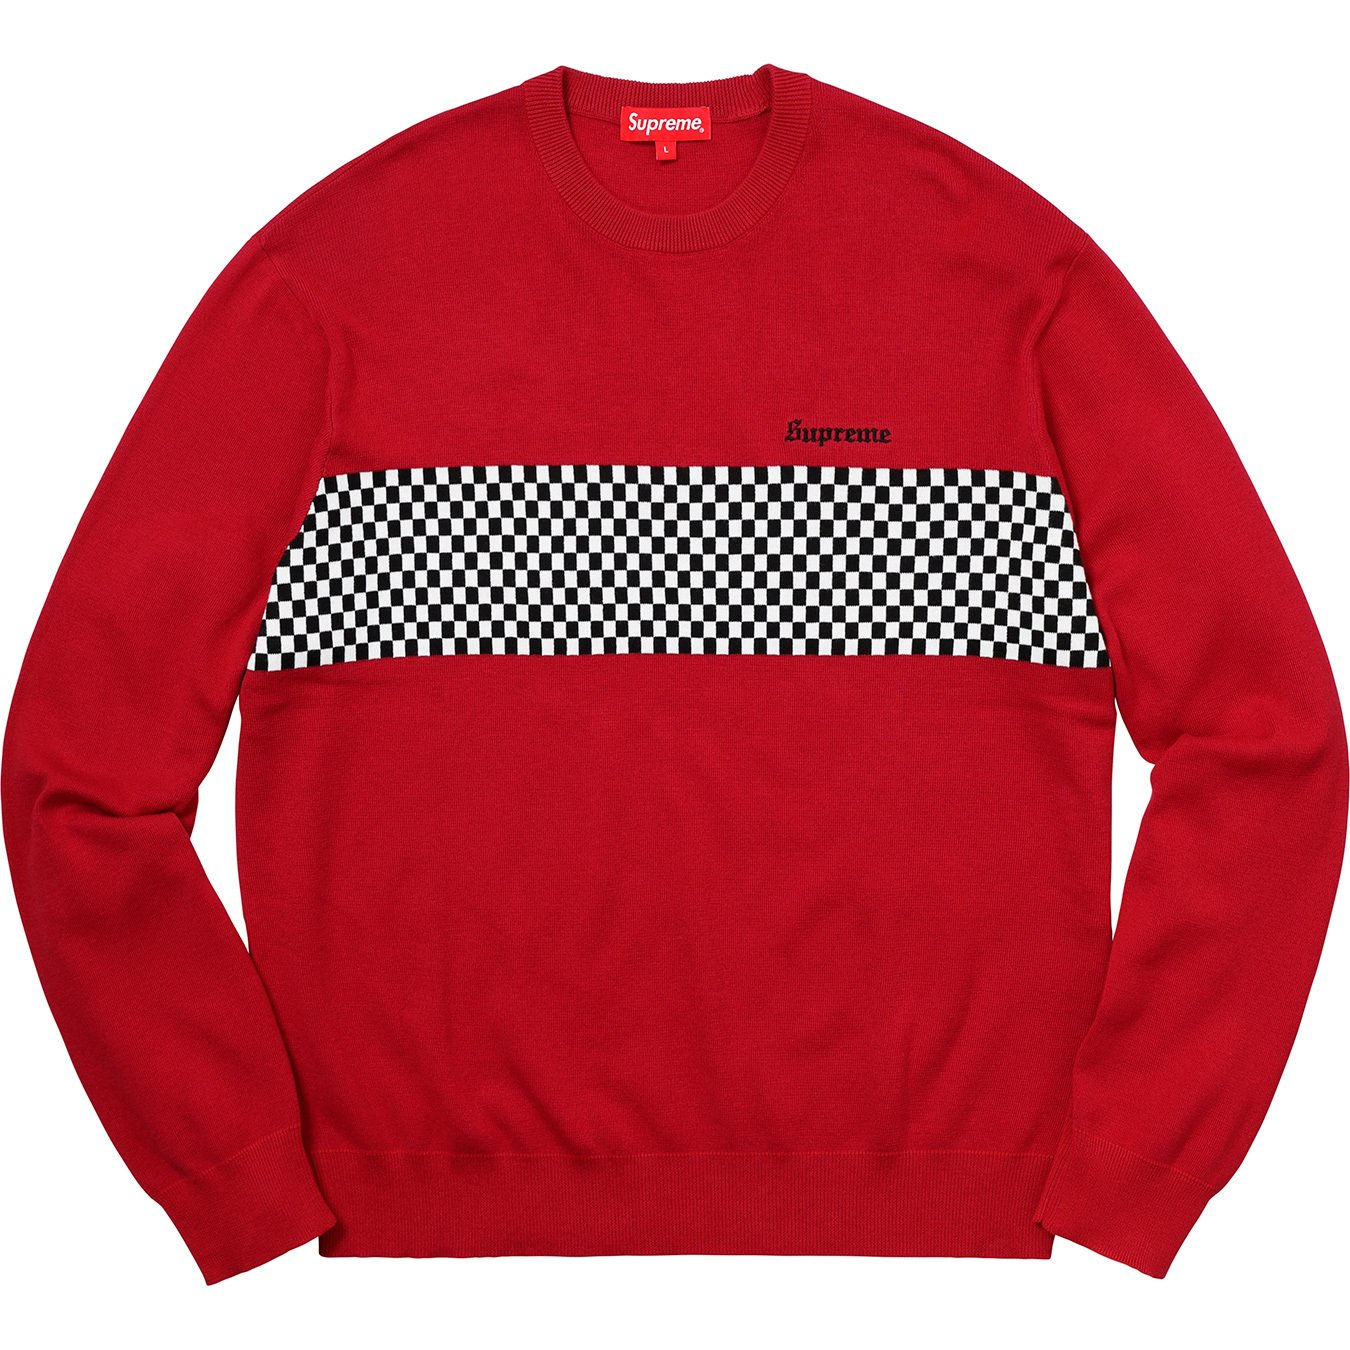 supreme-18ss-spring-summer-checkered-panel-crewneck-sweater